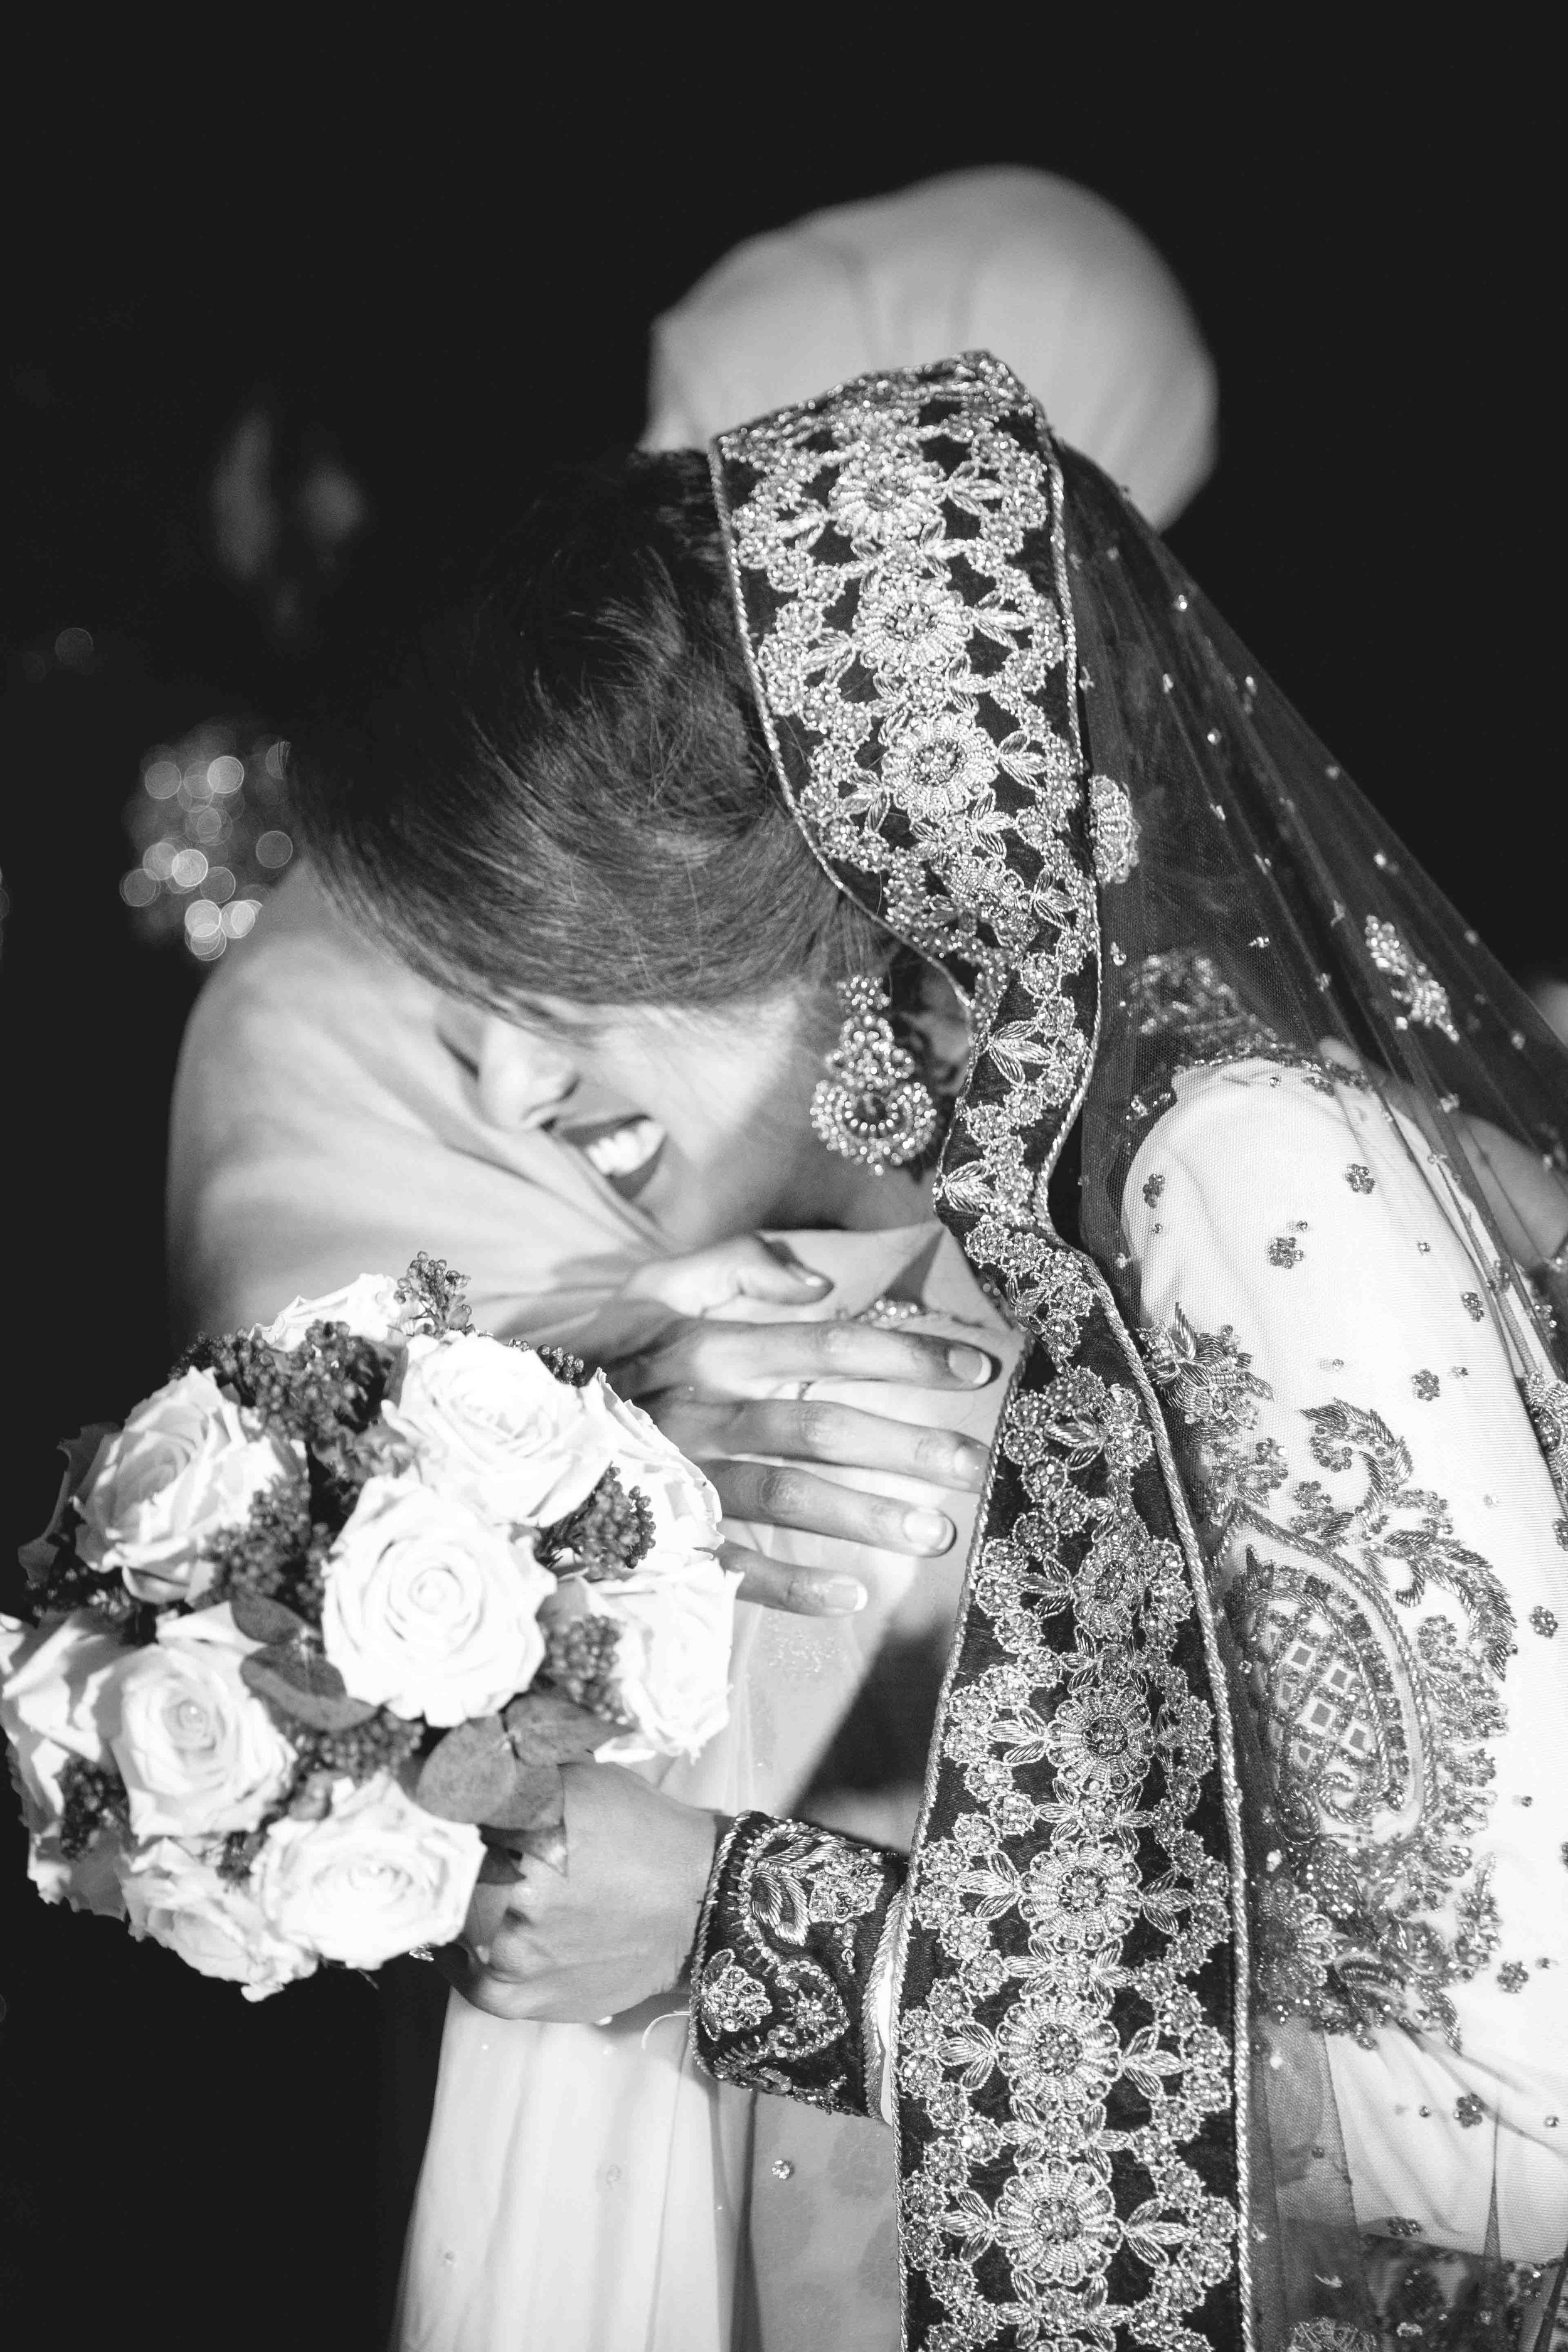 Asian Wedding Photographer Opu Sultan Photography Lyme Park Scotland Edinburgh Glasgow London Manchester Liverpool Birmingham Wedding Photos prewed shoot Azman & Saira Blog-165.jpg